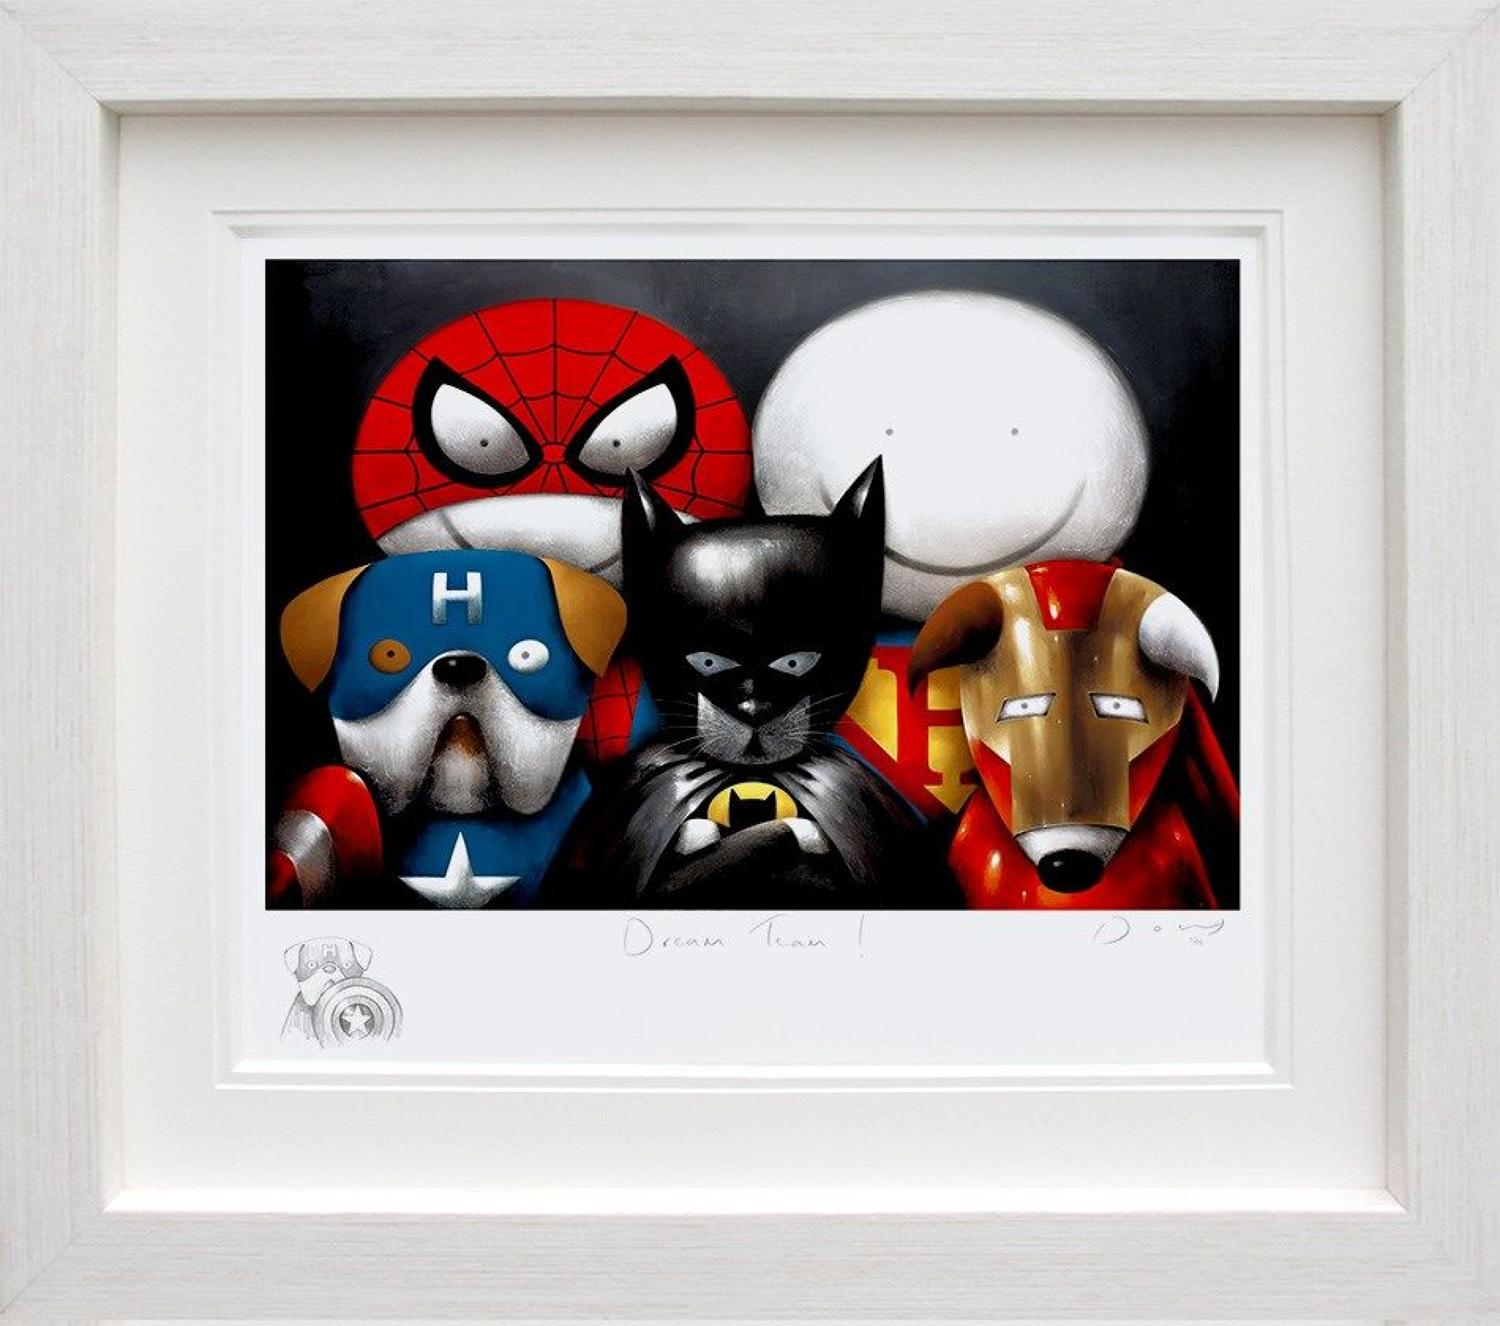 Doug Hyde-Dream Team! (Remarq) Framed Art Print